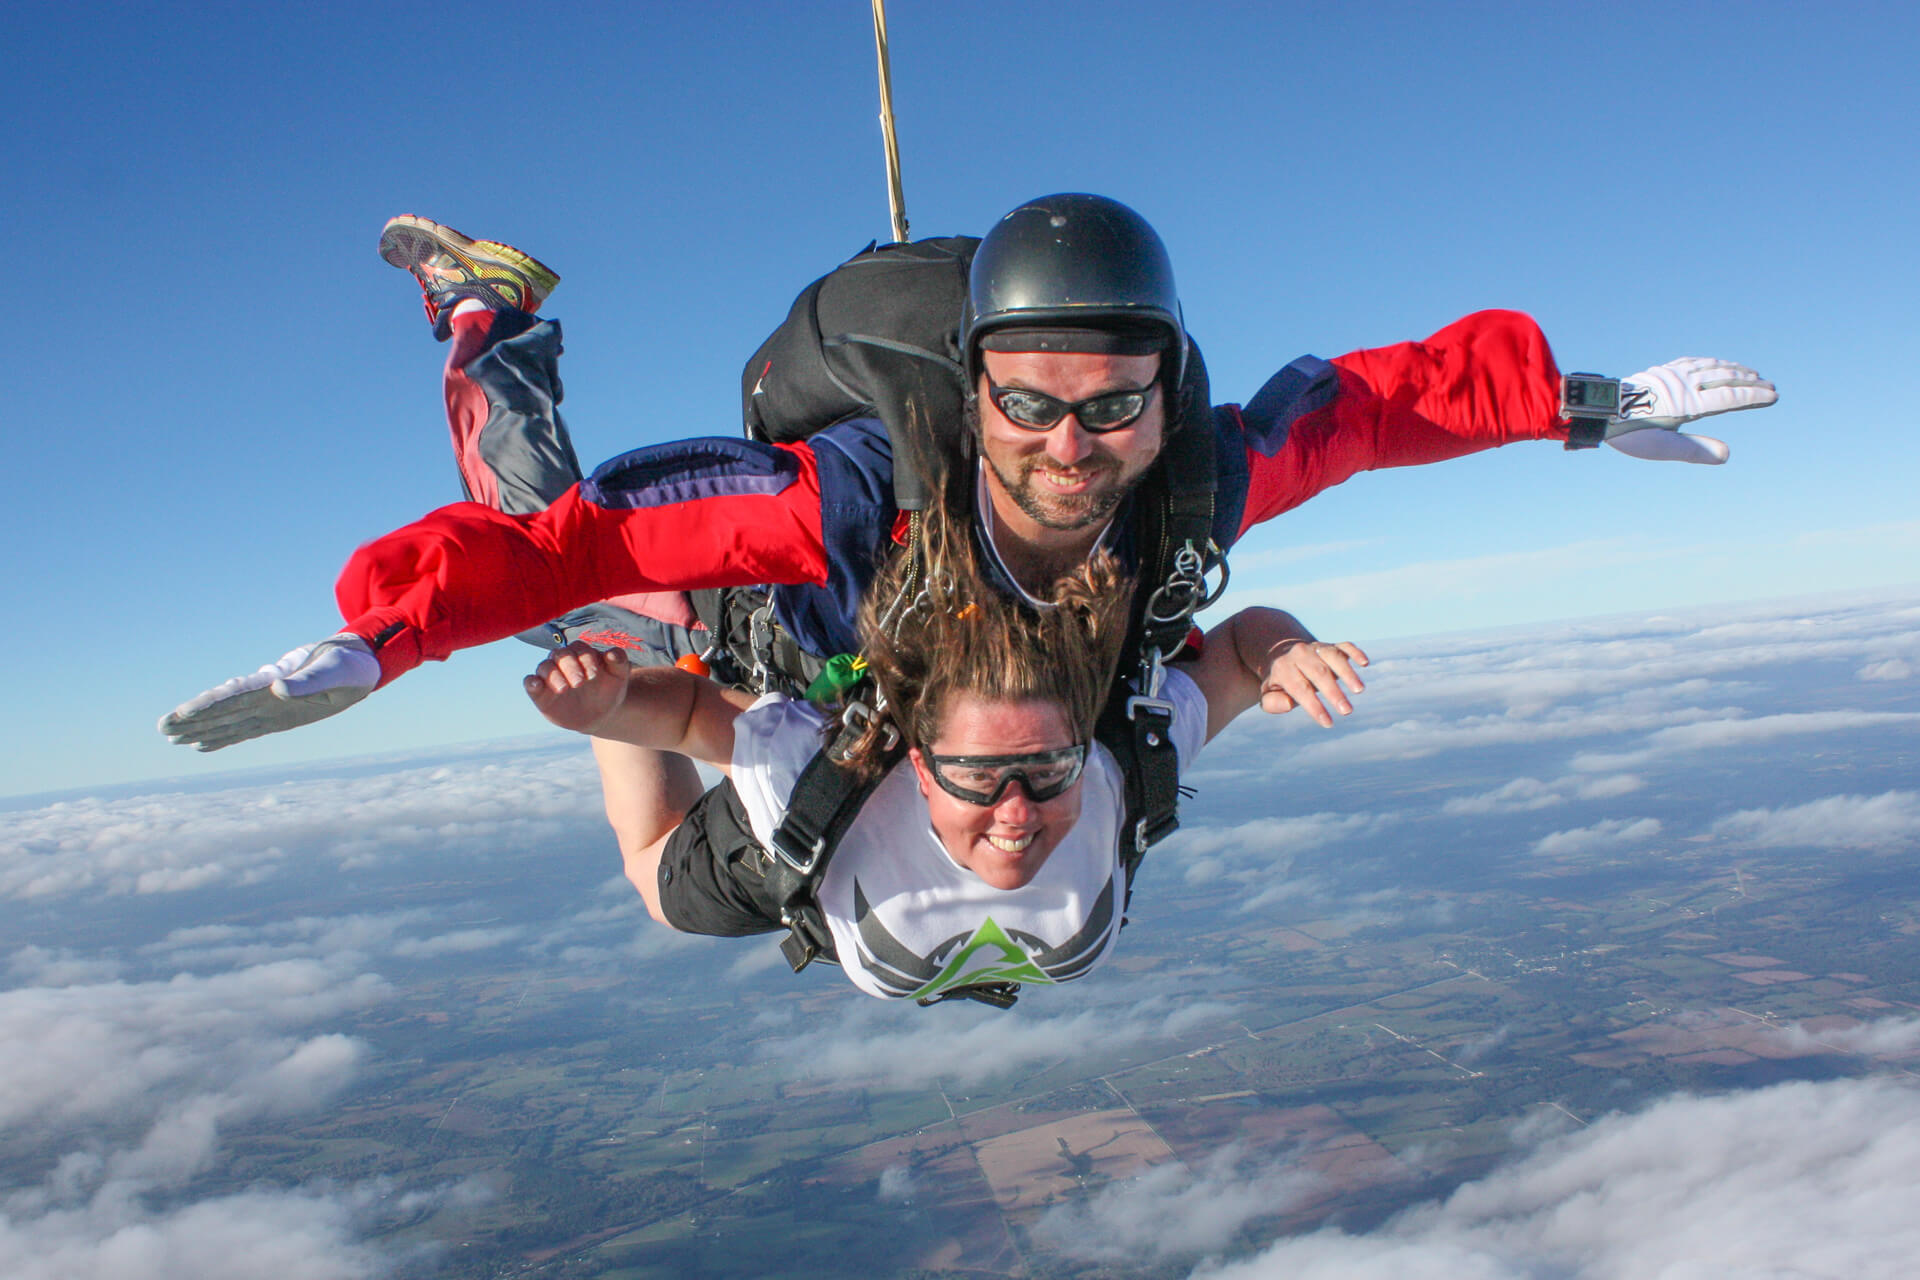 Skydiving ticket prices - Canteen north platte ne